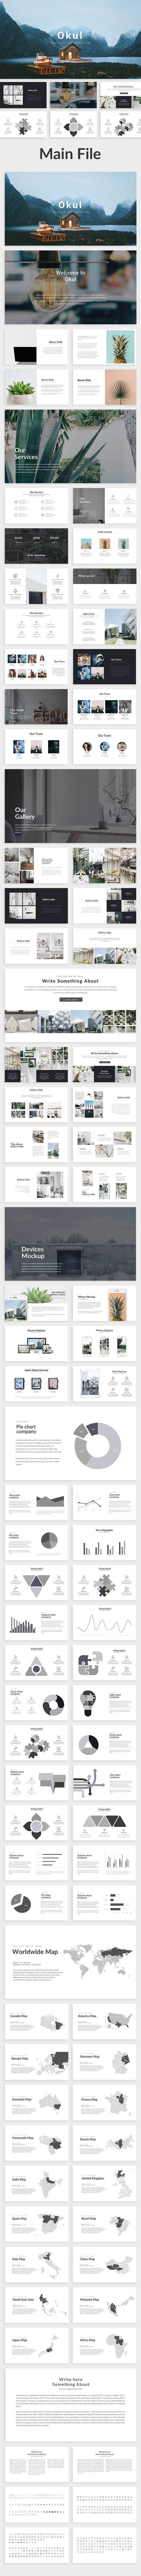 Okul  Creative — Powerpoint PPT #bleached #investor presentation • Download ➝ https://graphicriver.net/item/okul-creative-powerpoint-template/19650370?ref=pxcr